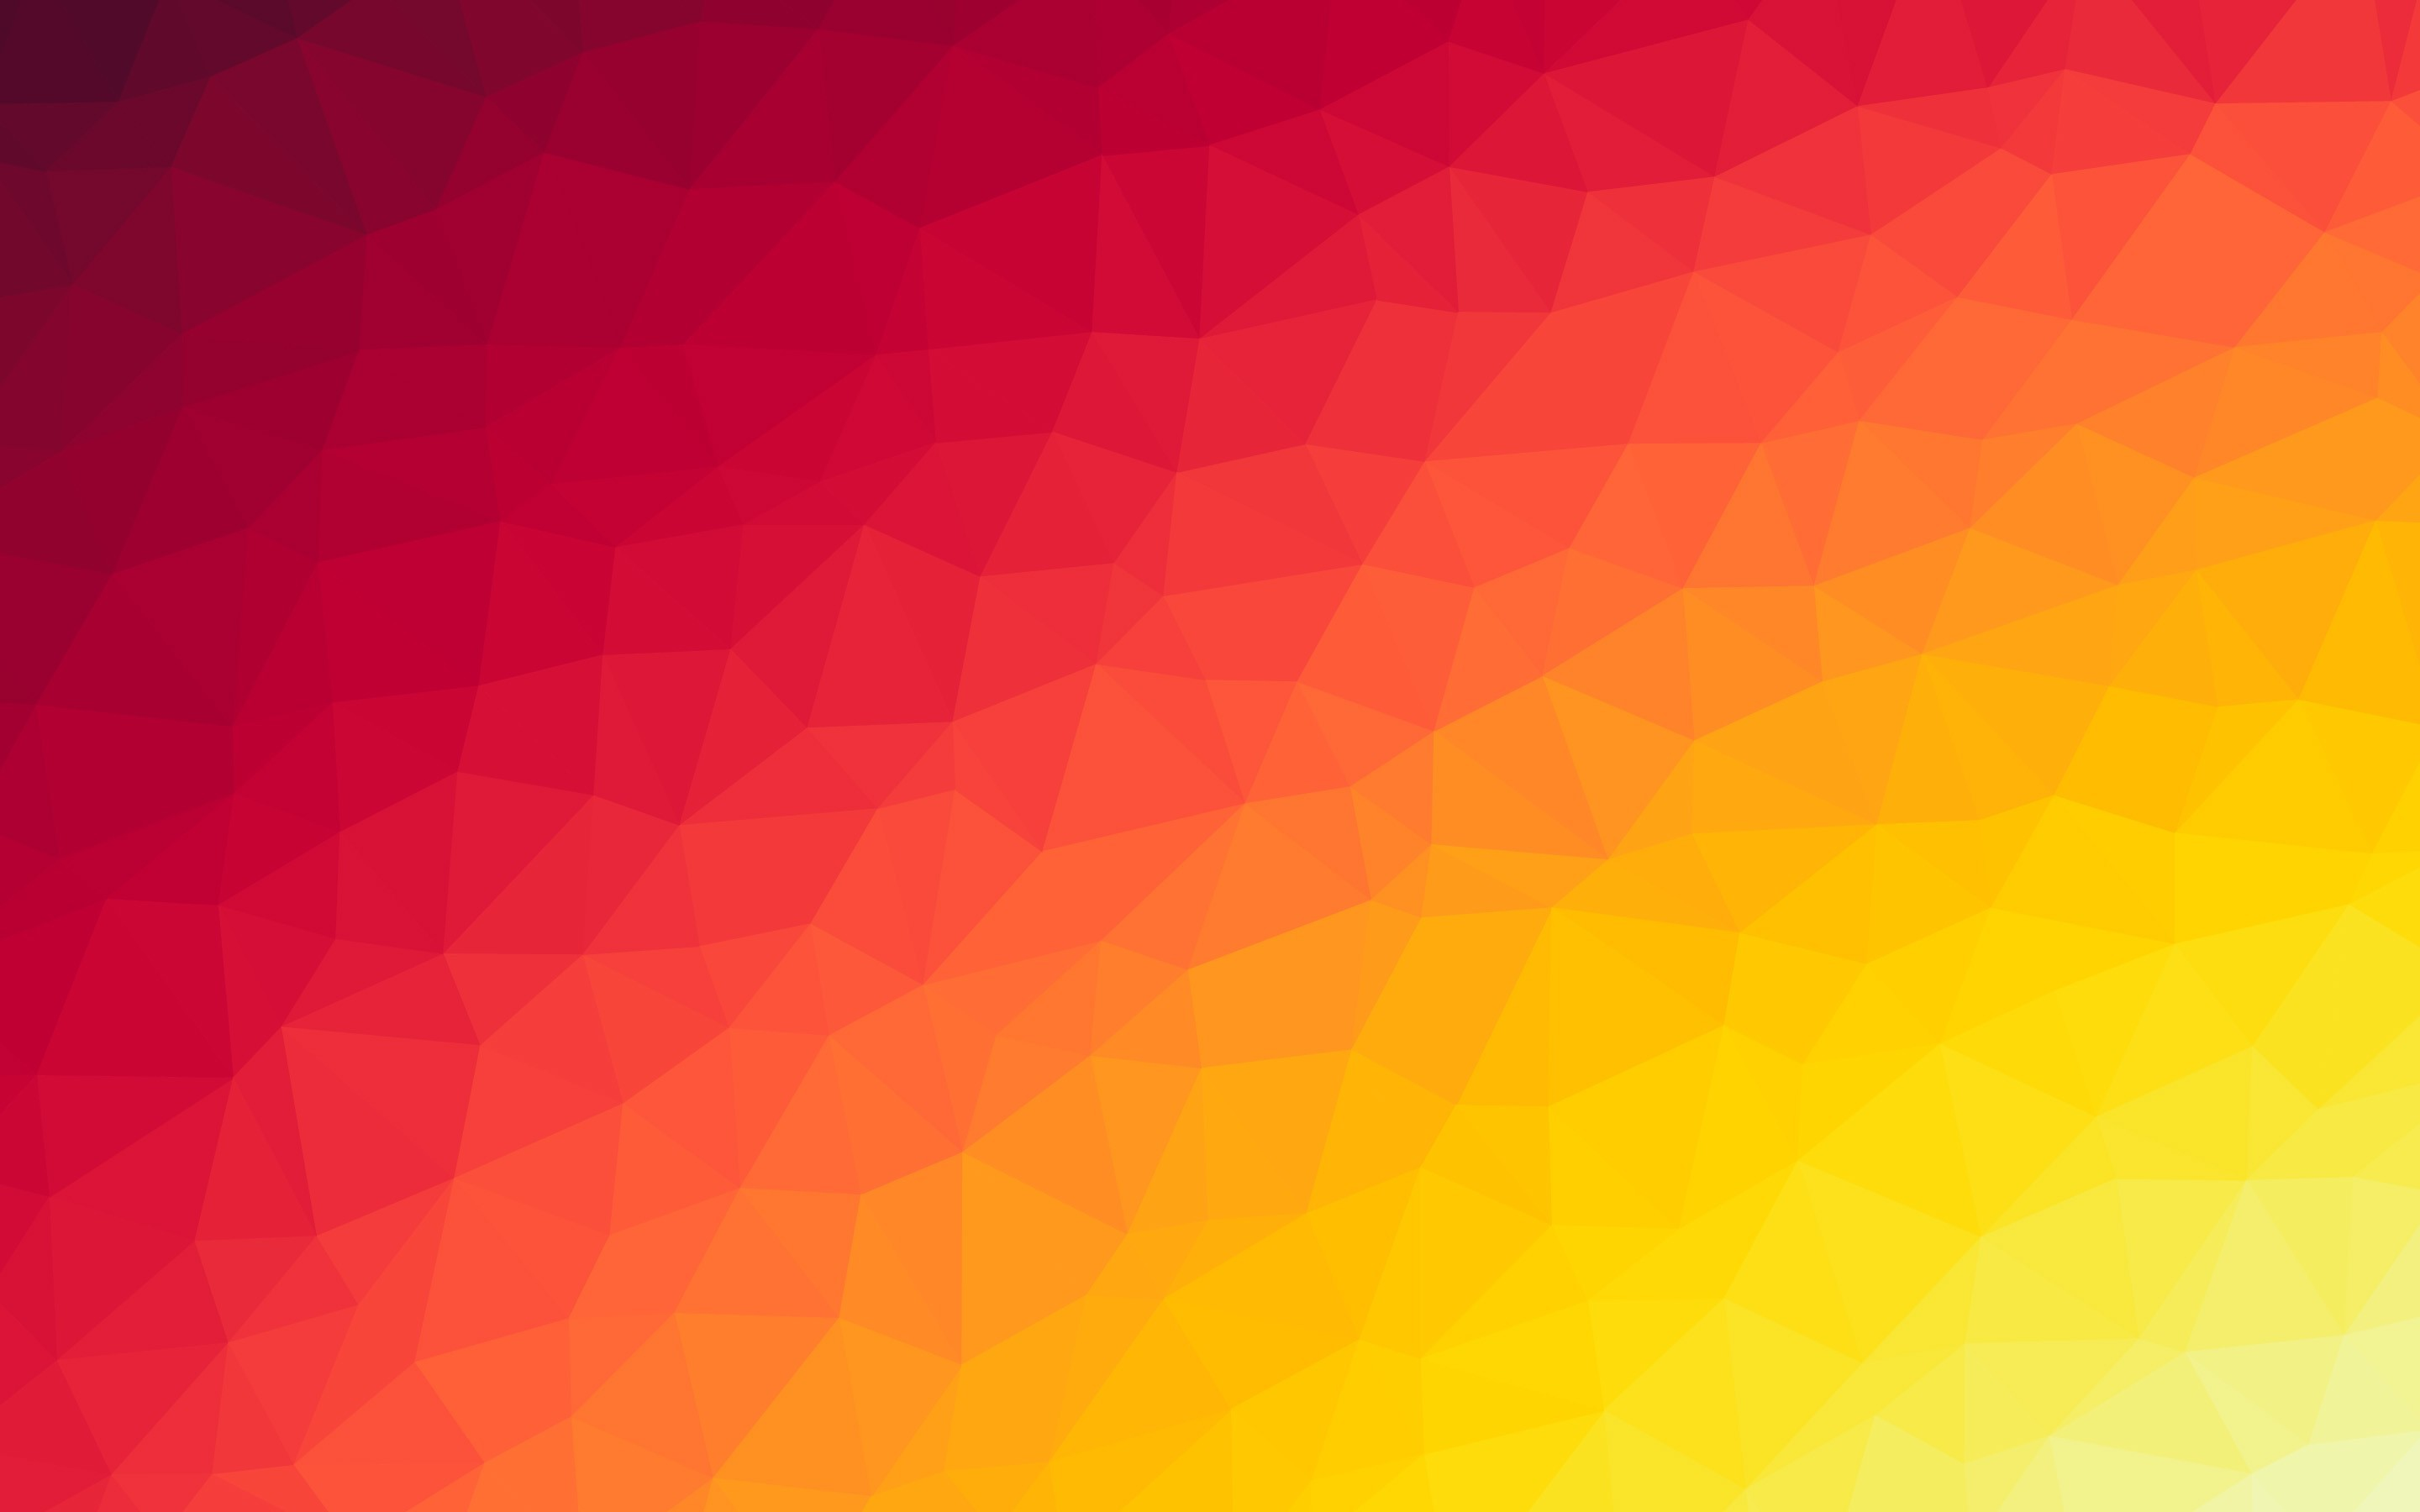 Colored Backgrounds (43+ images)